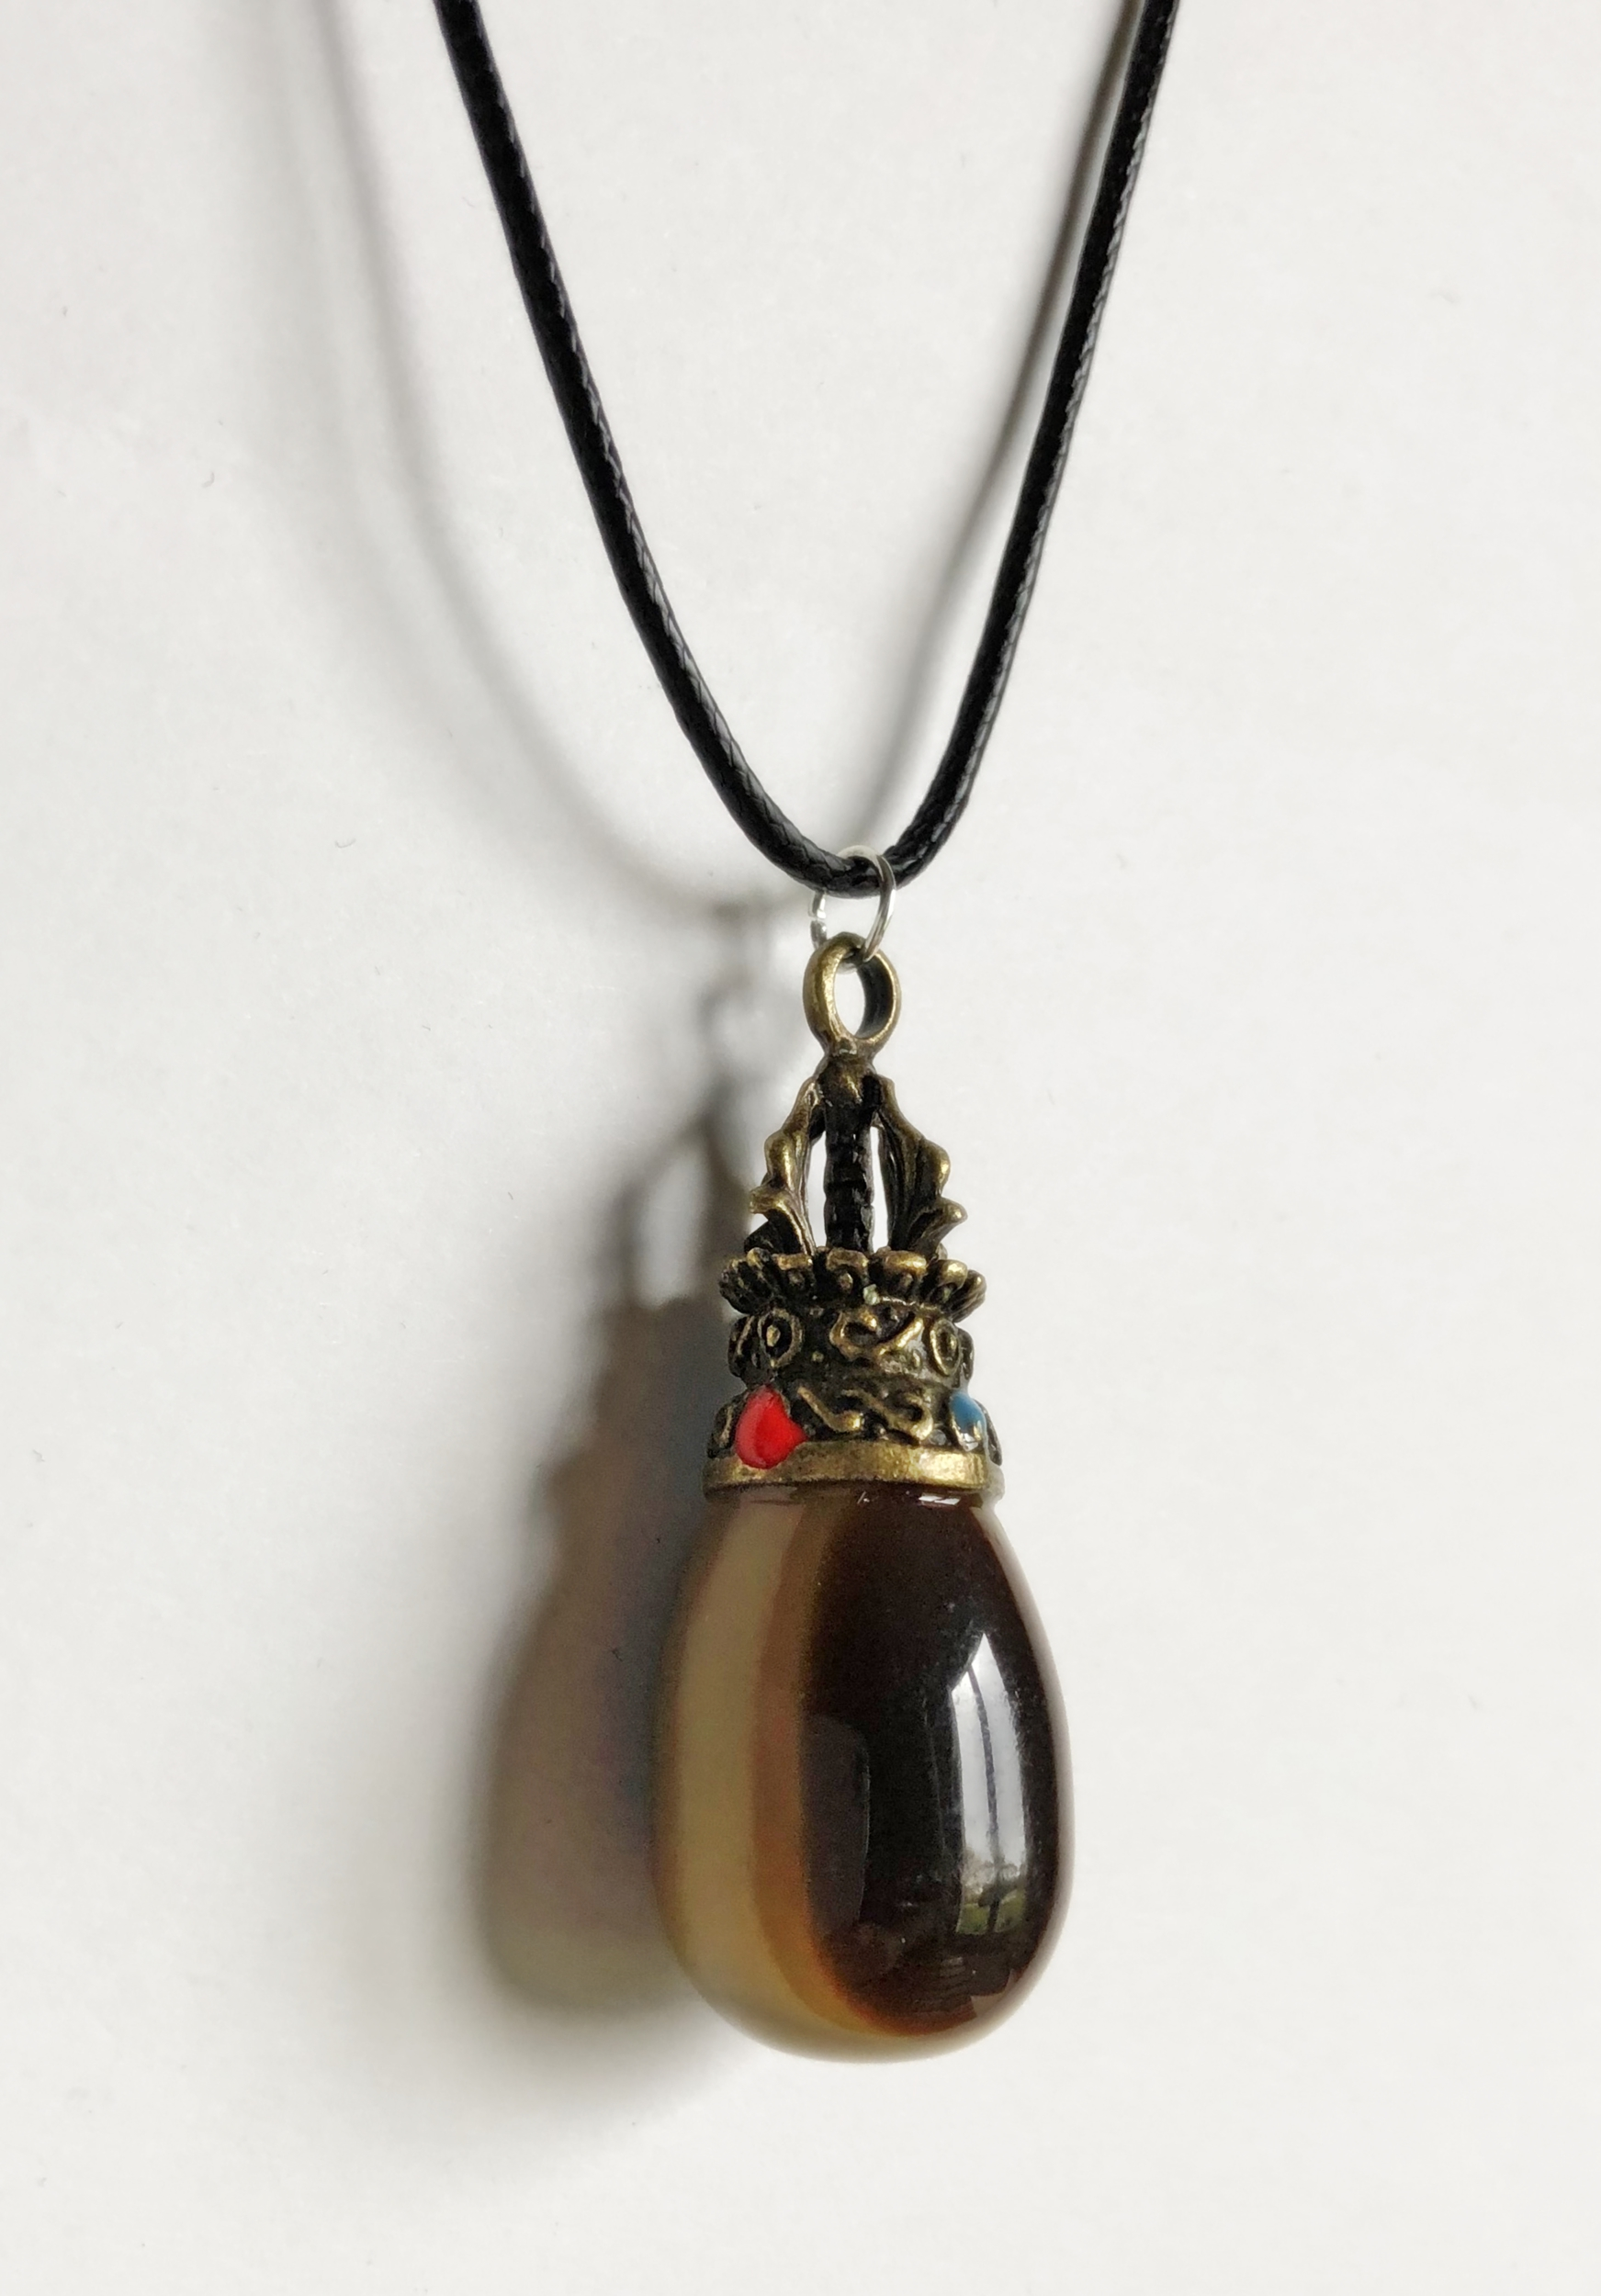 Collier agate boswana forme goutte - Angel shop